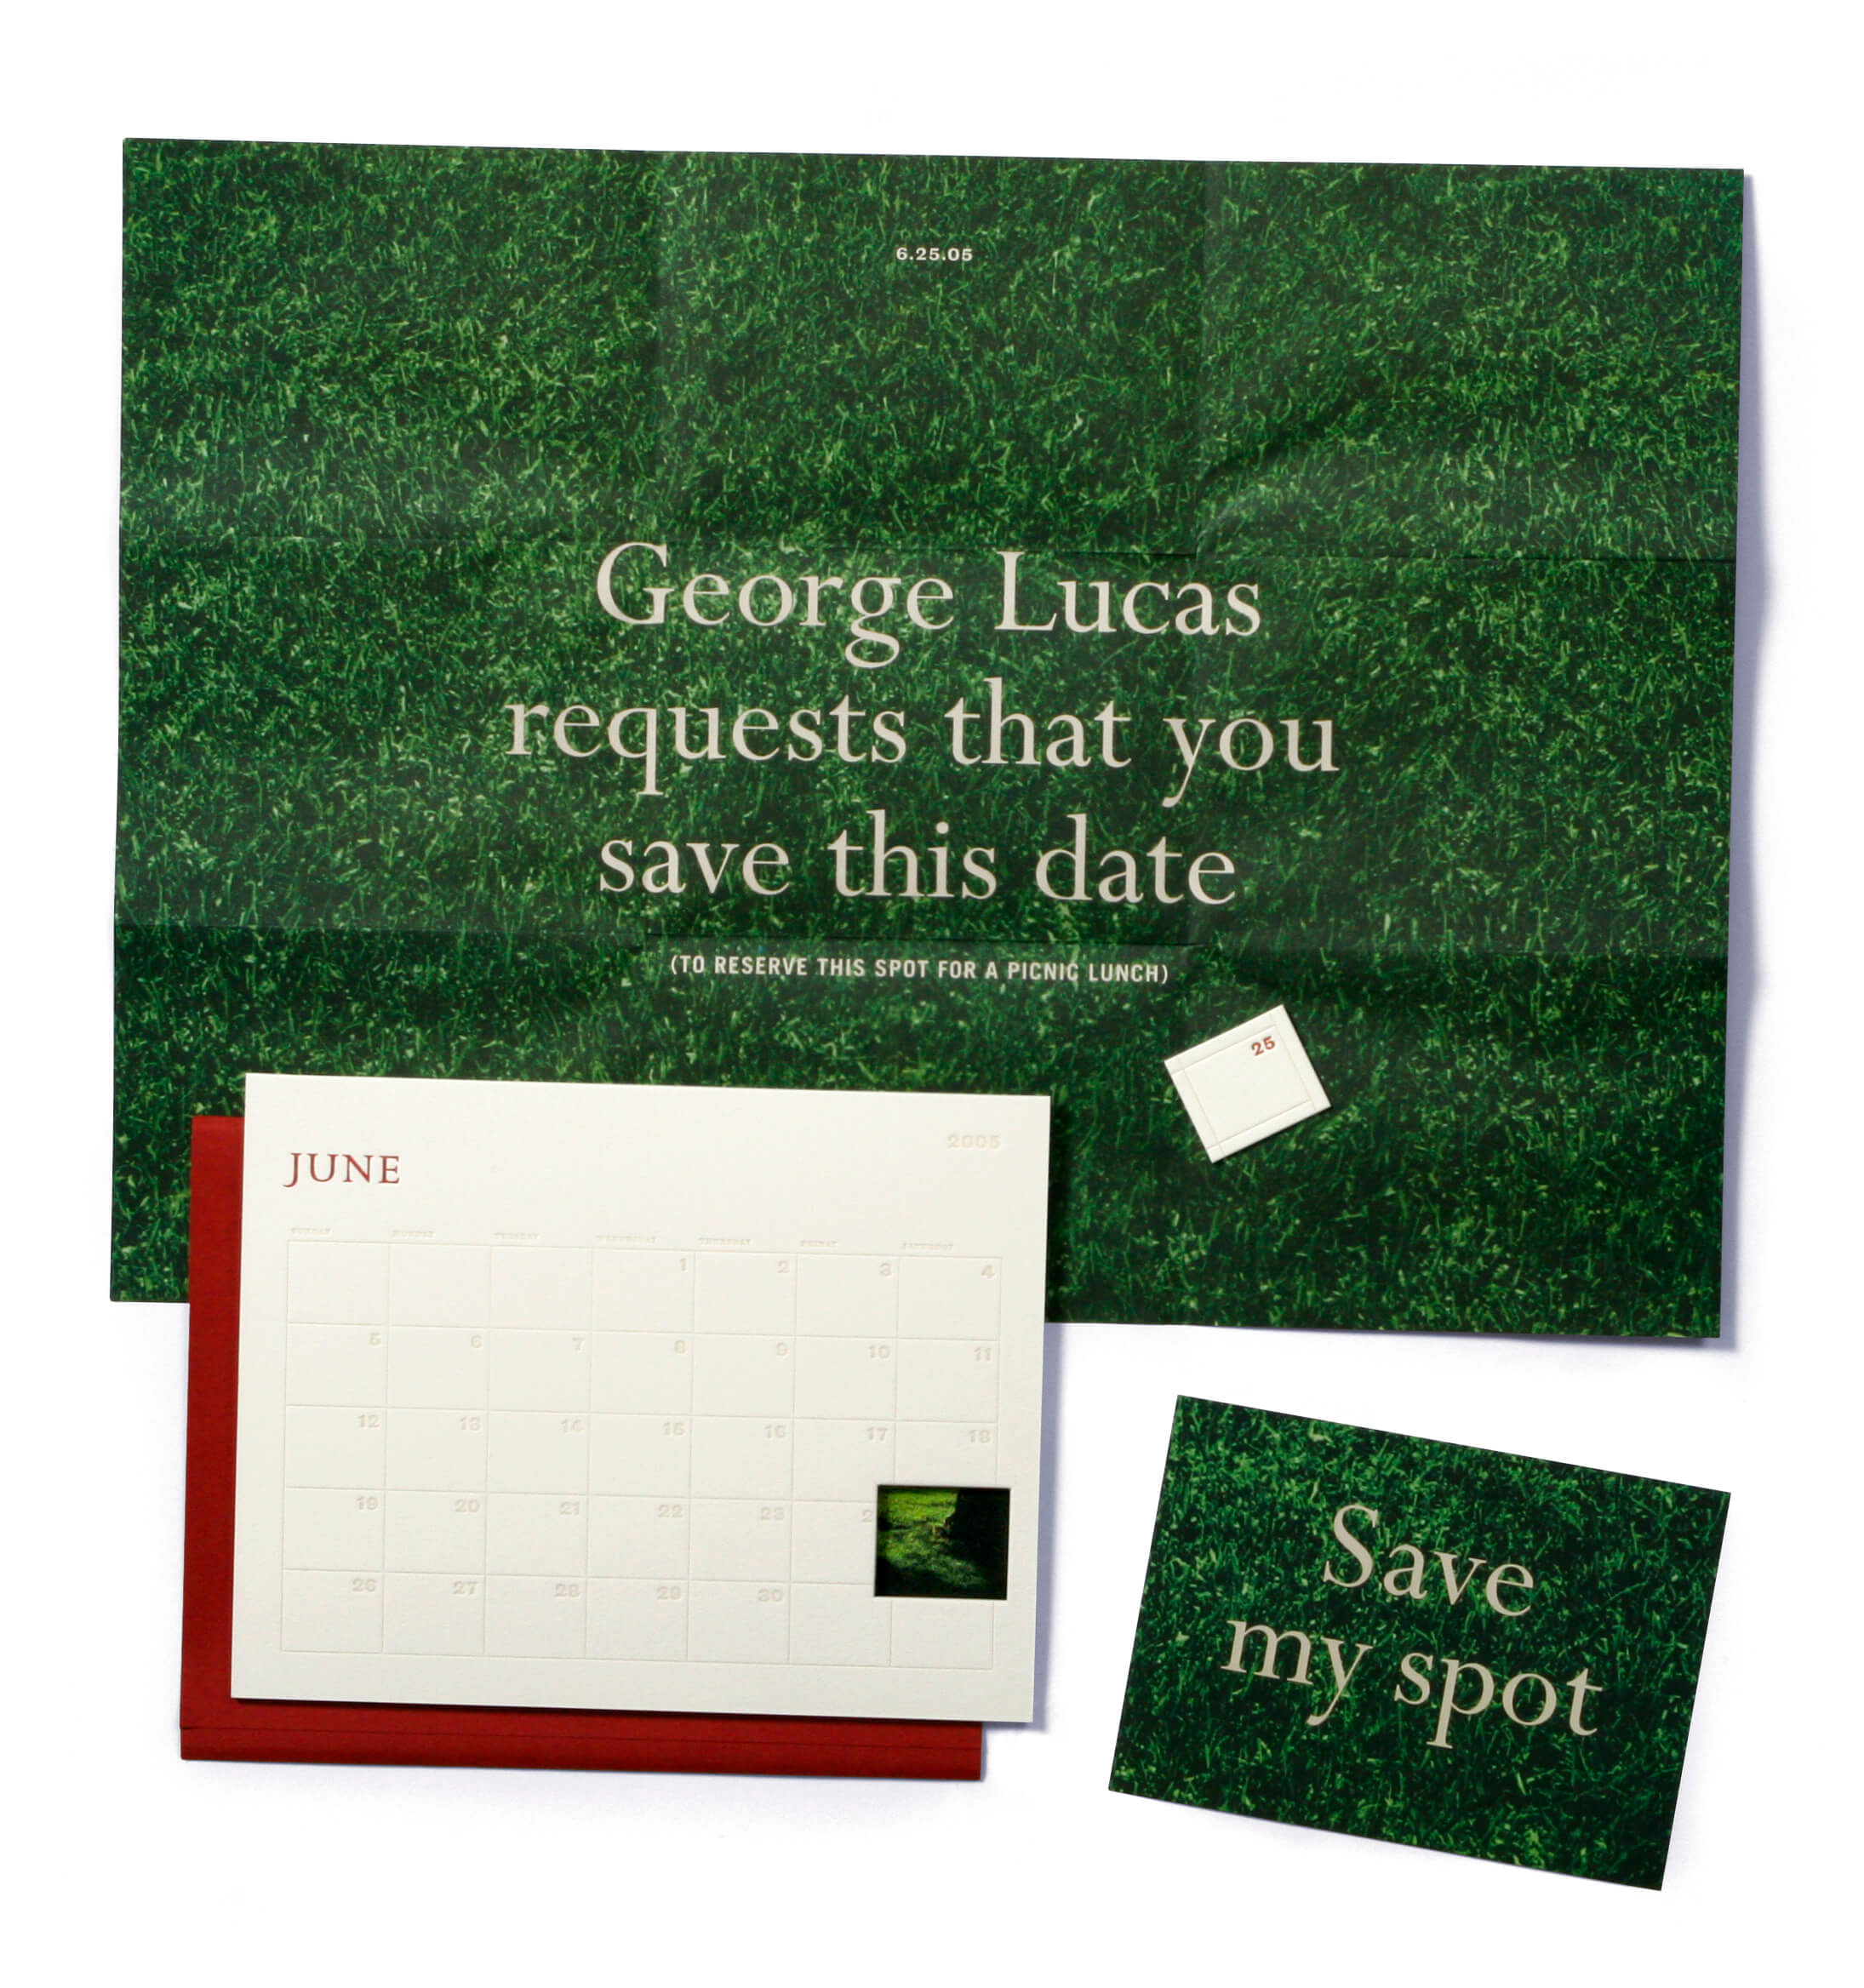 George Lucas green grass invitation with June calendar and red envelope